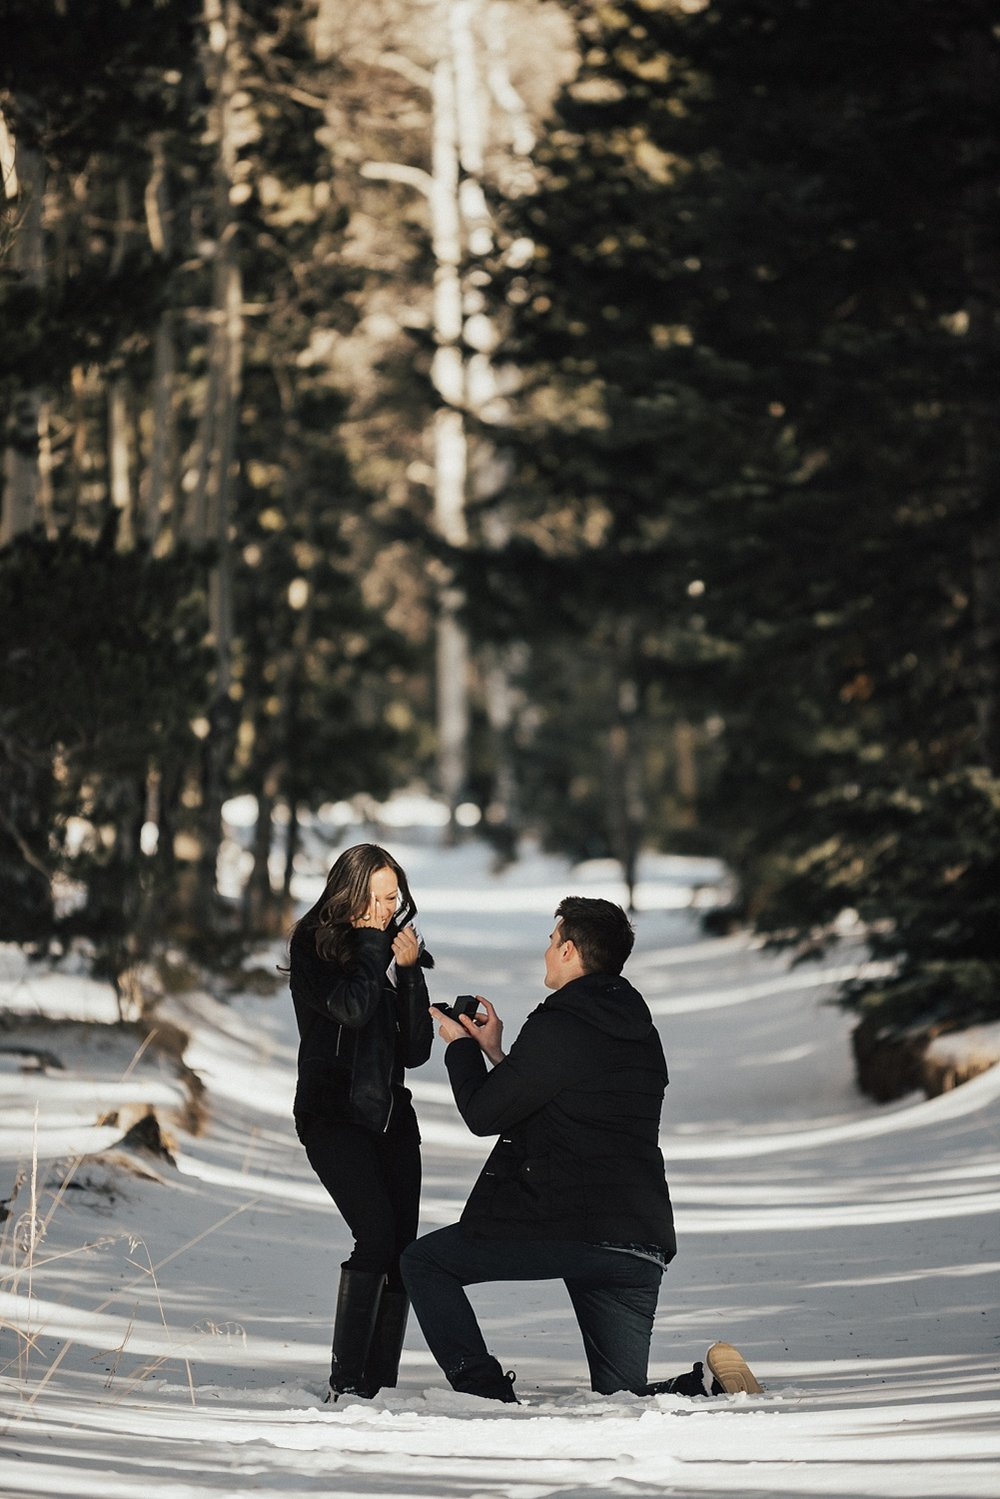 Nate_shepard_photography_engagement_wedding_photographer_denver_colorado_0198.jpg